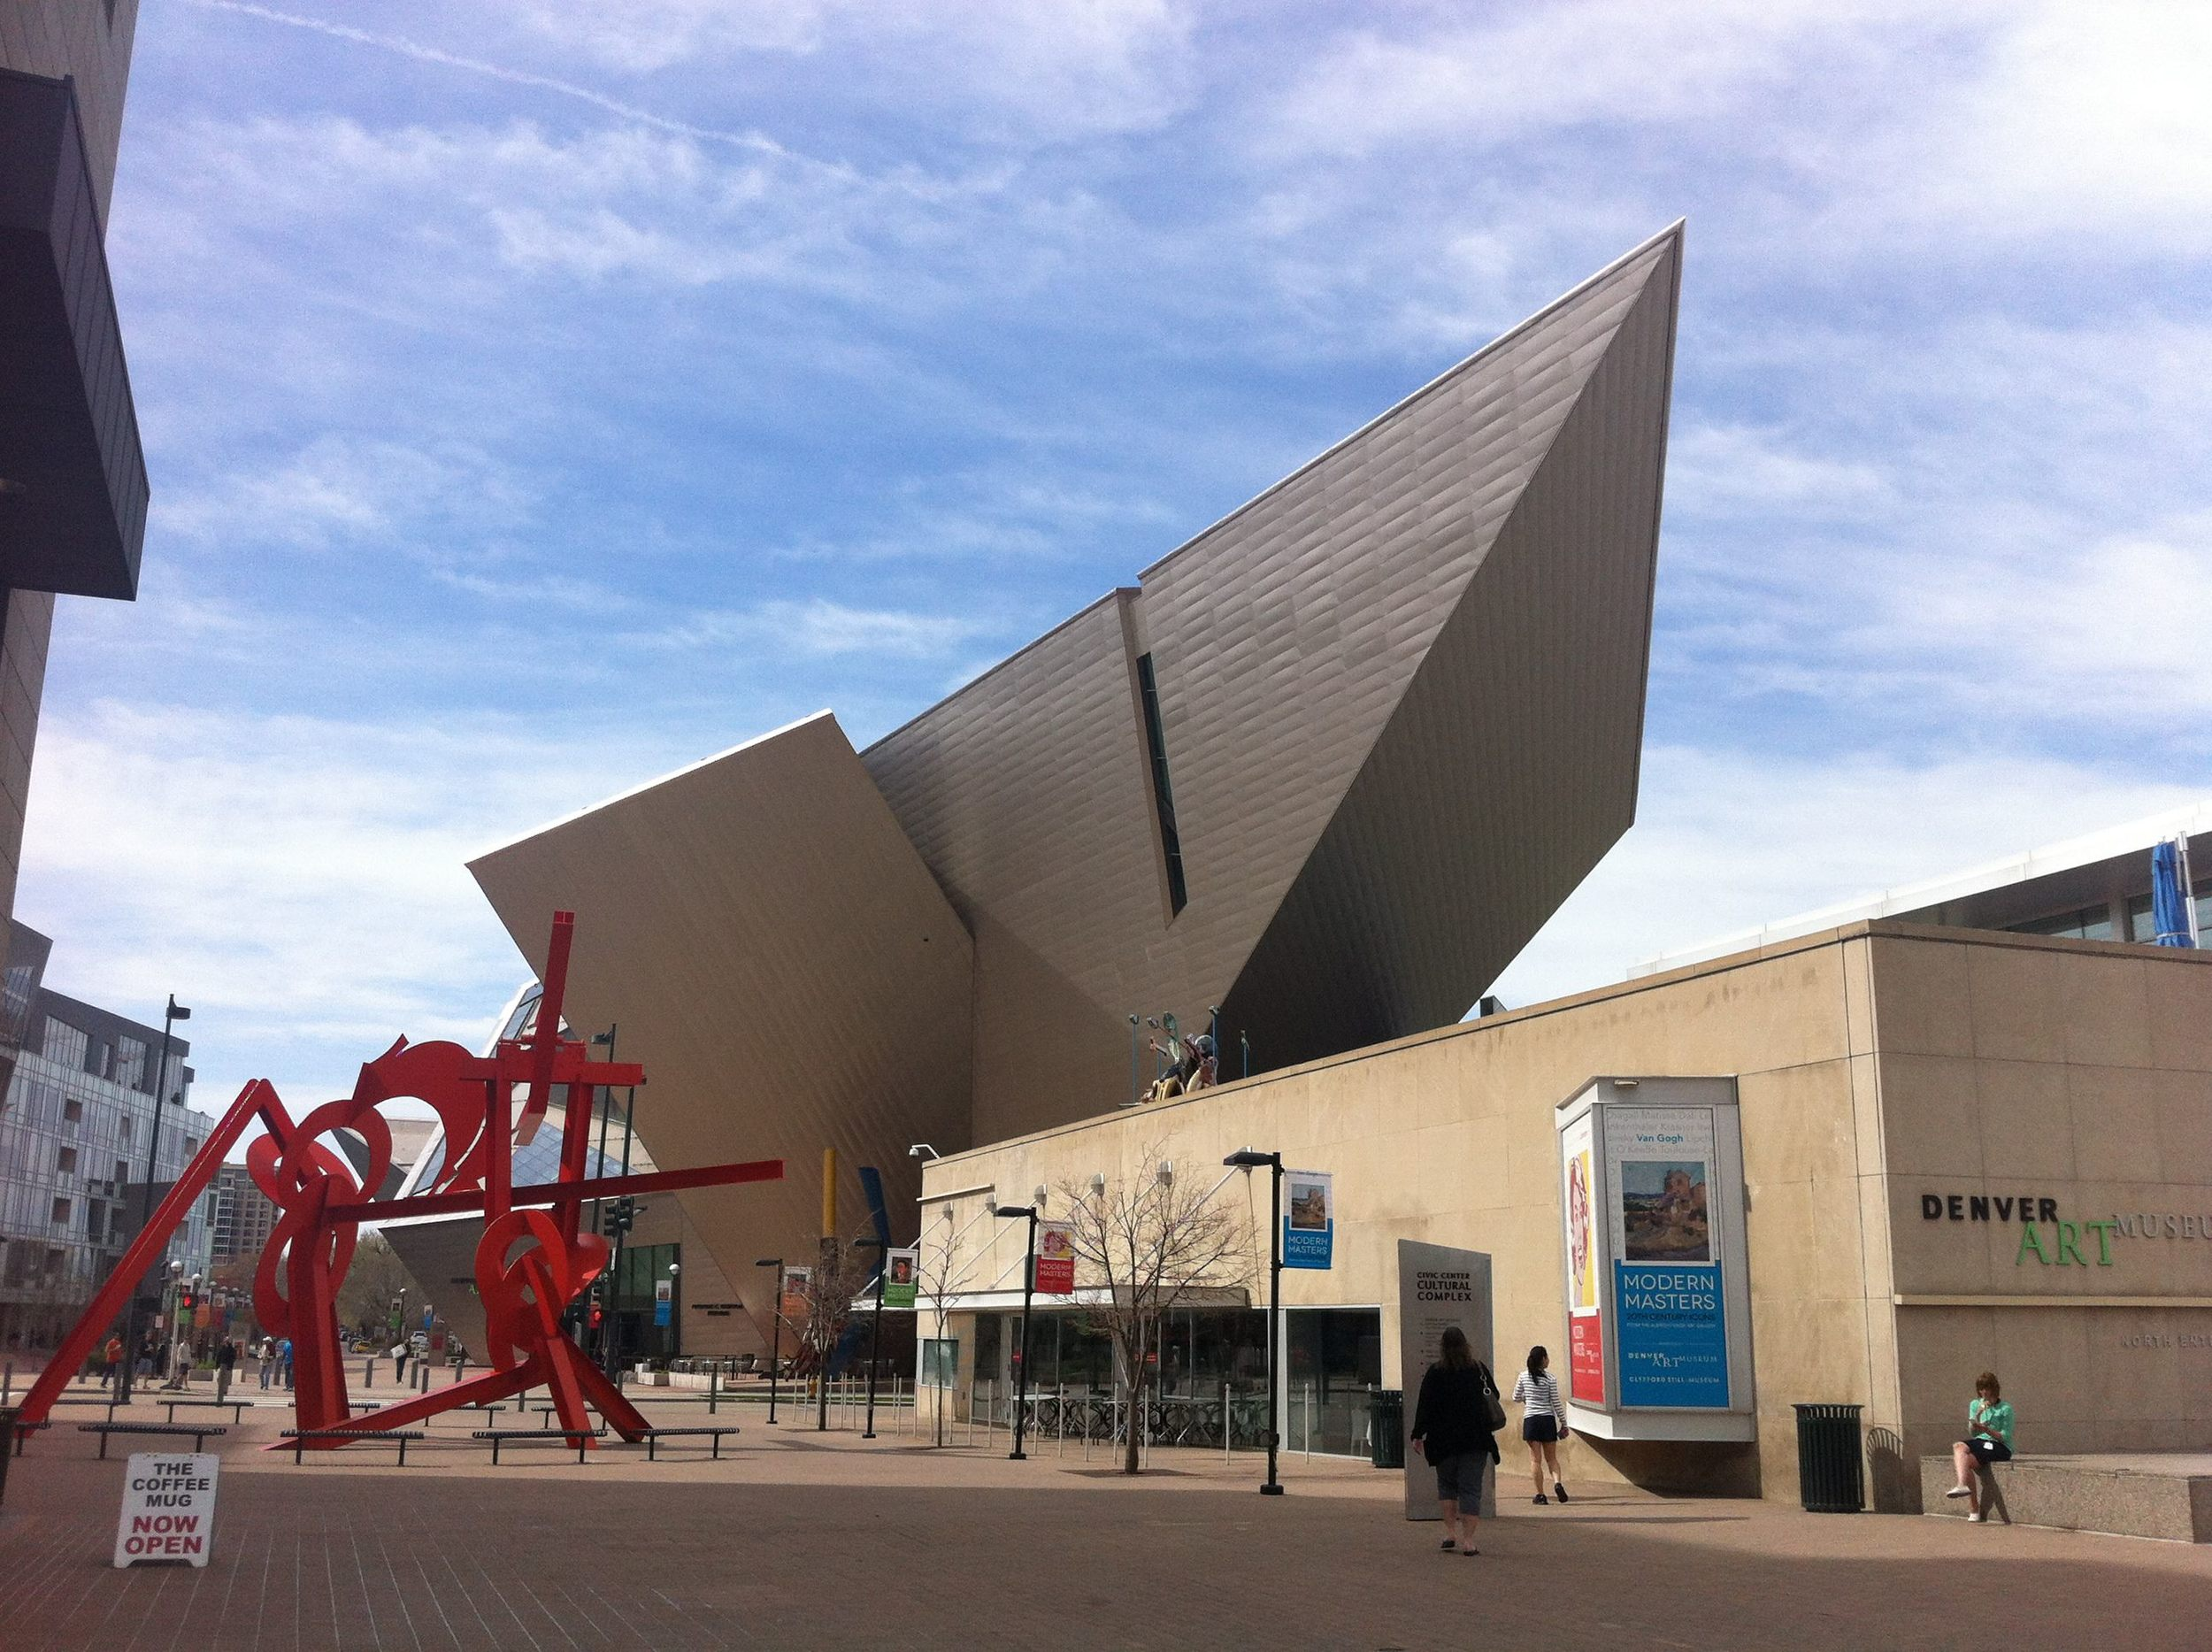 Denver's uber contemporary Art Museum. Calgary lacks a major arts museum.